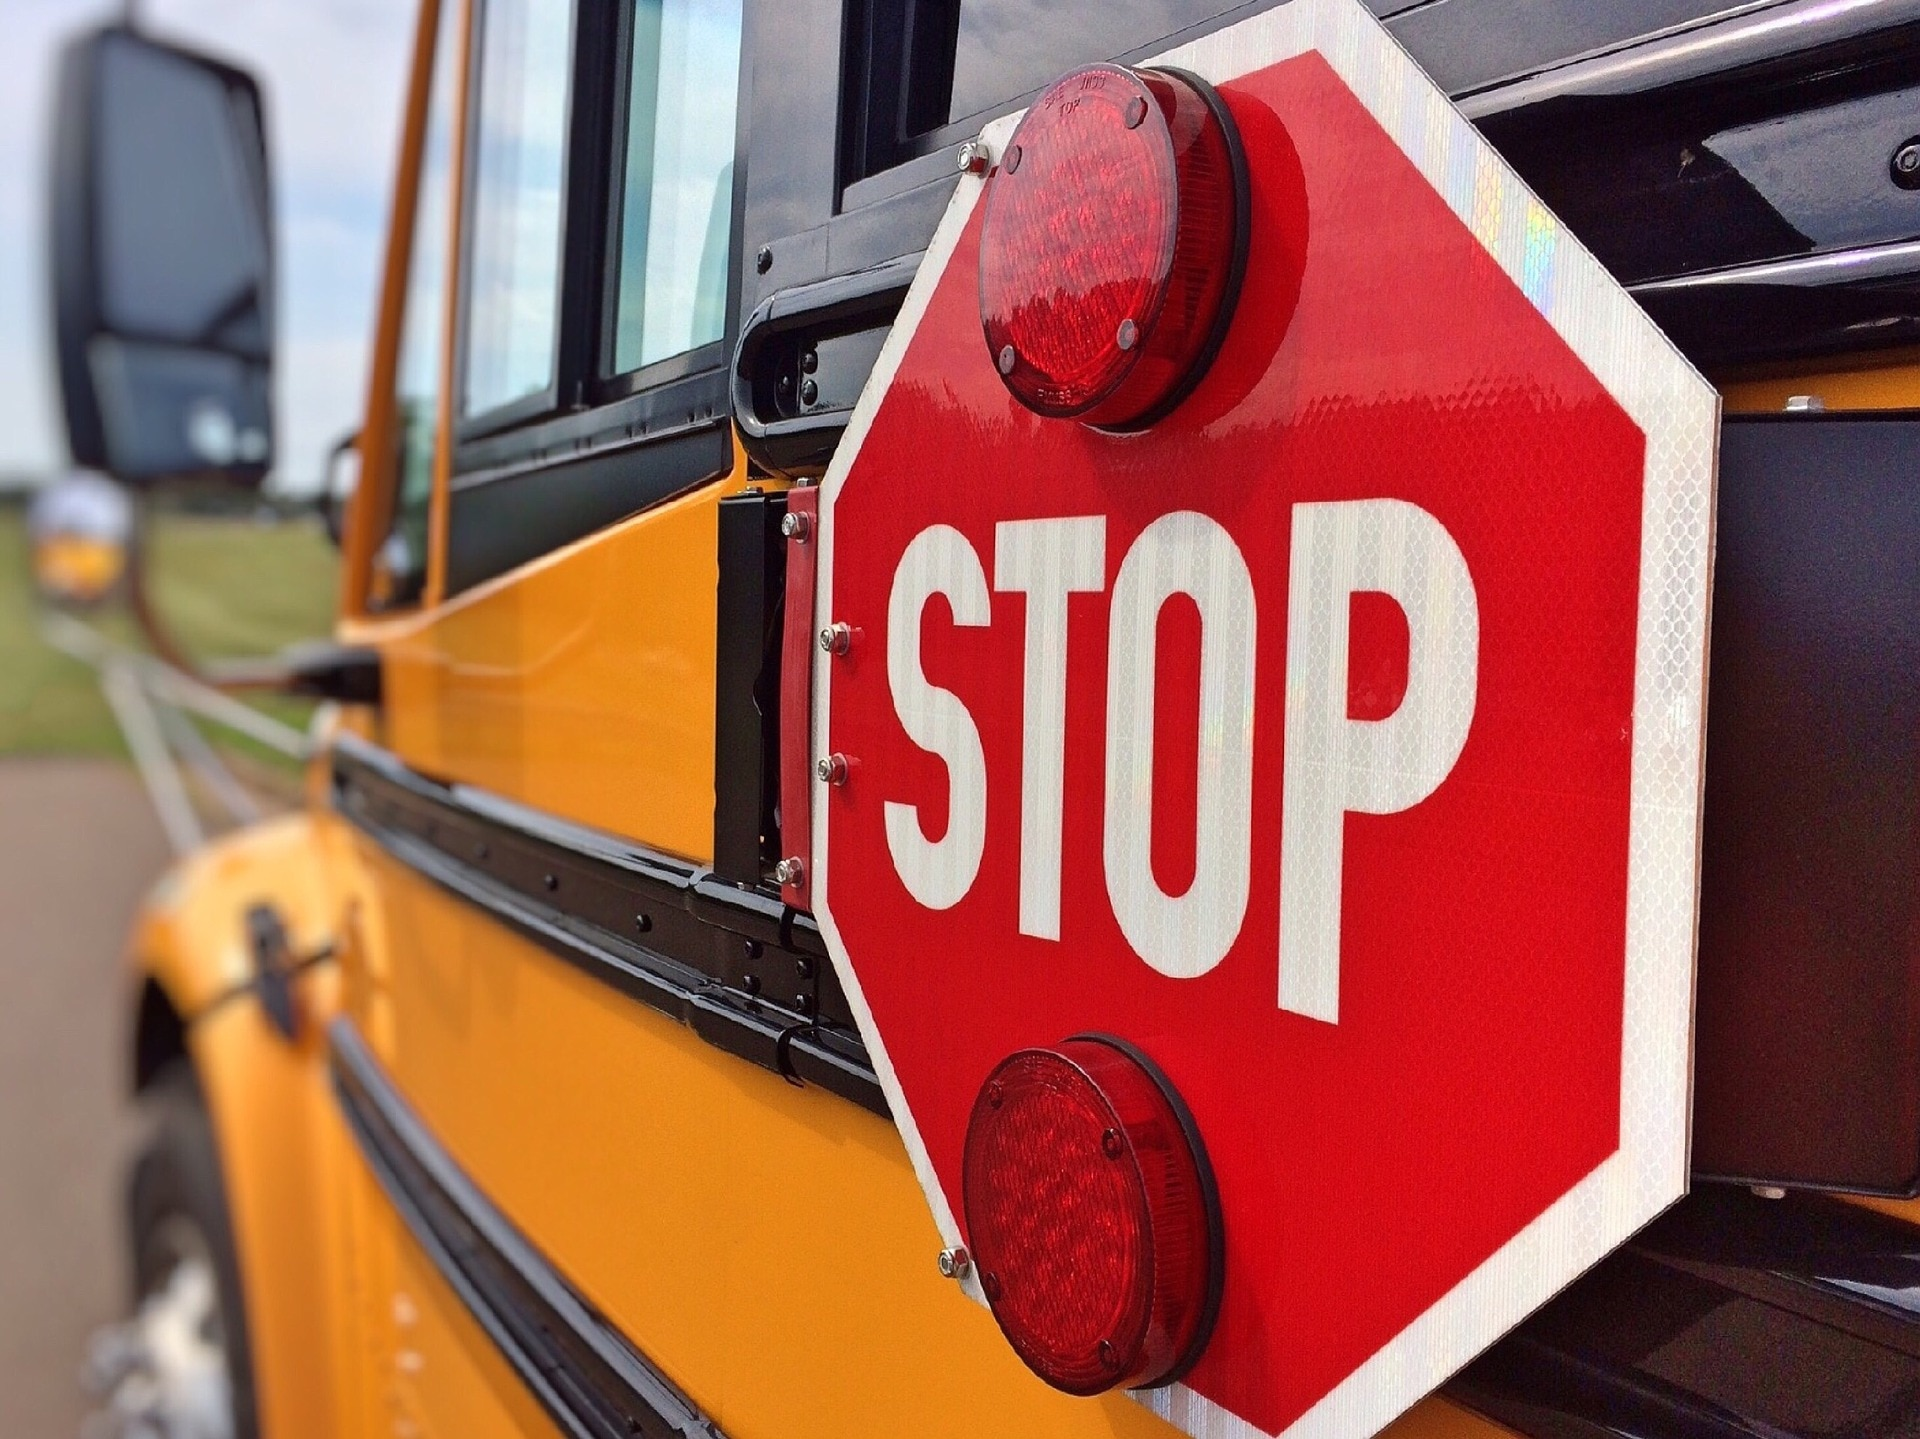 The stop sign on the side of a school bus.